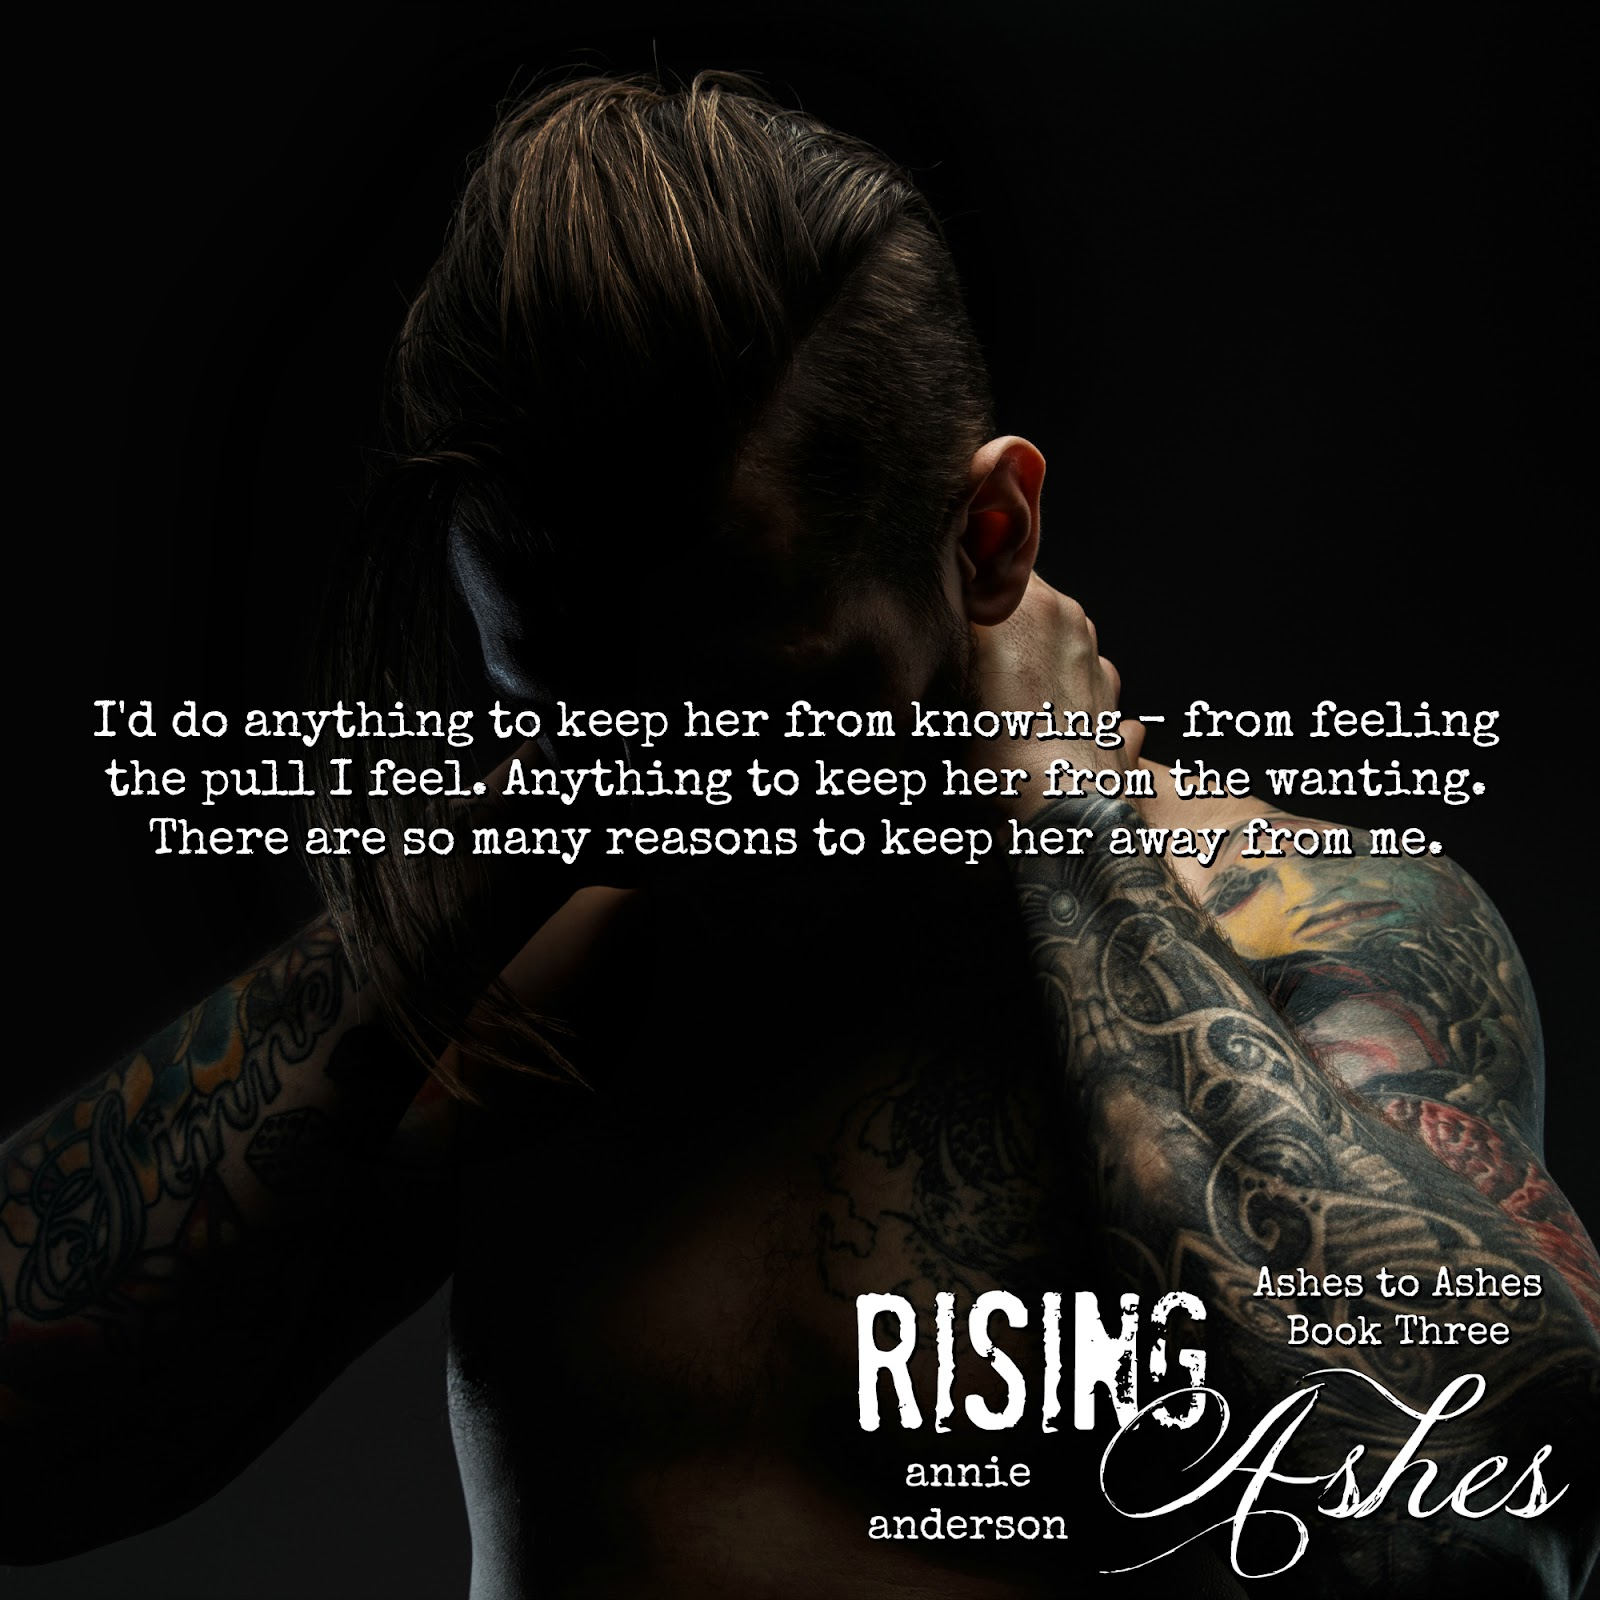 Rising Ashes - Wanting Teaser.jpg